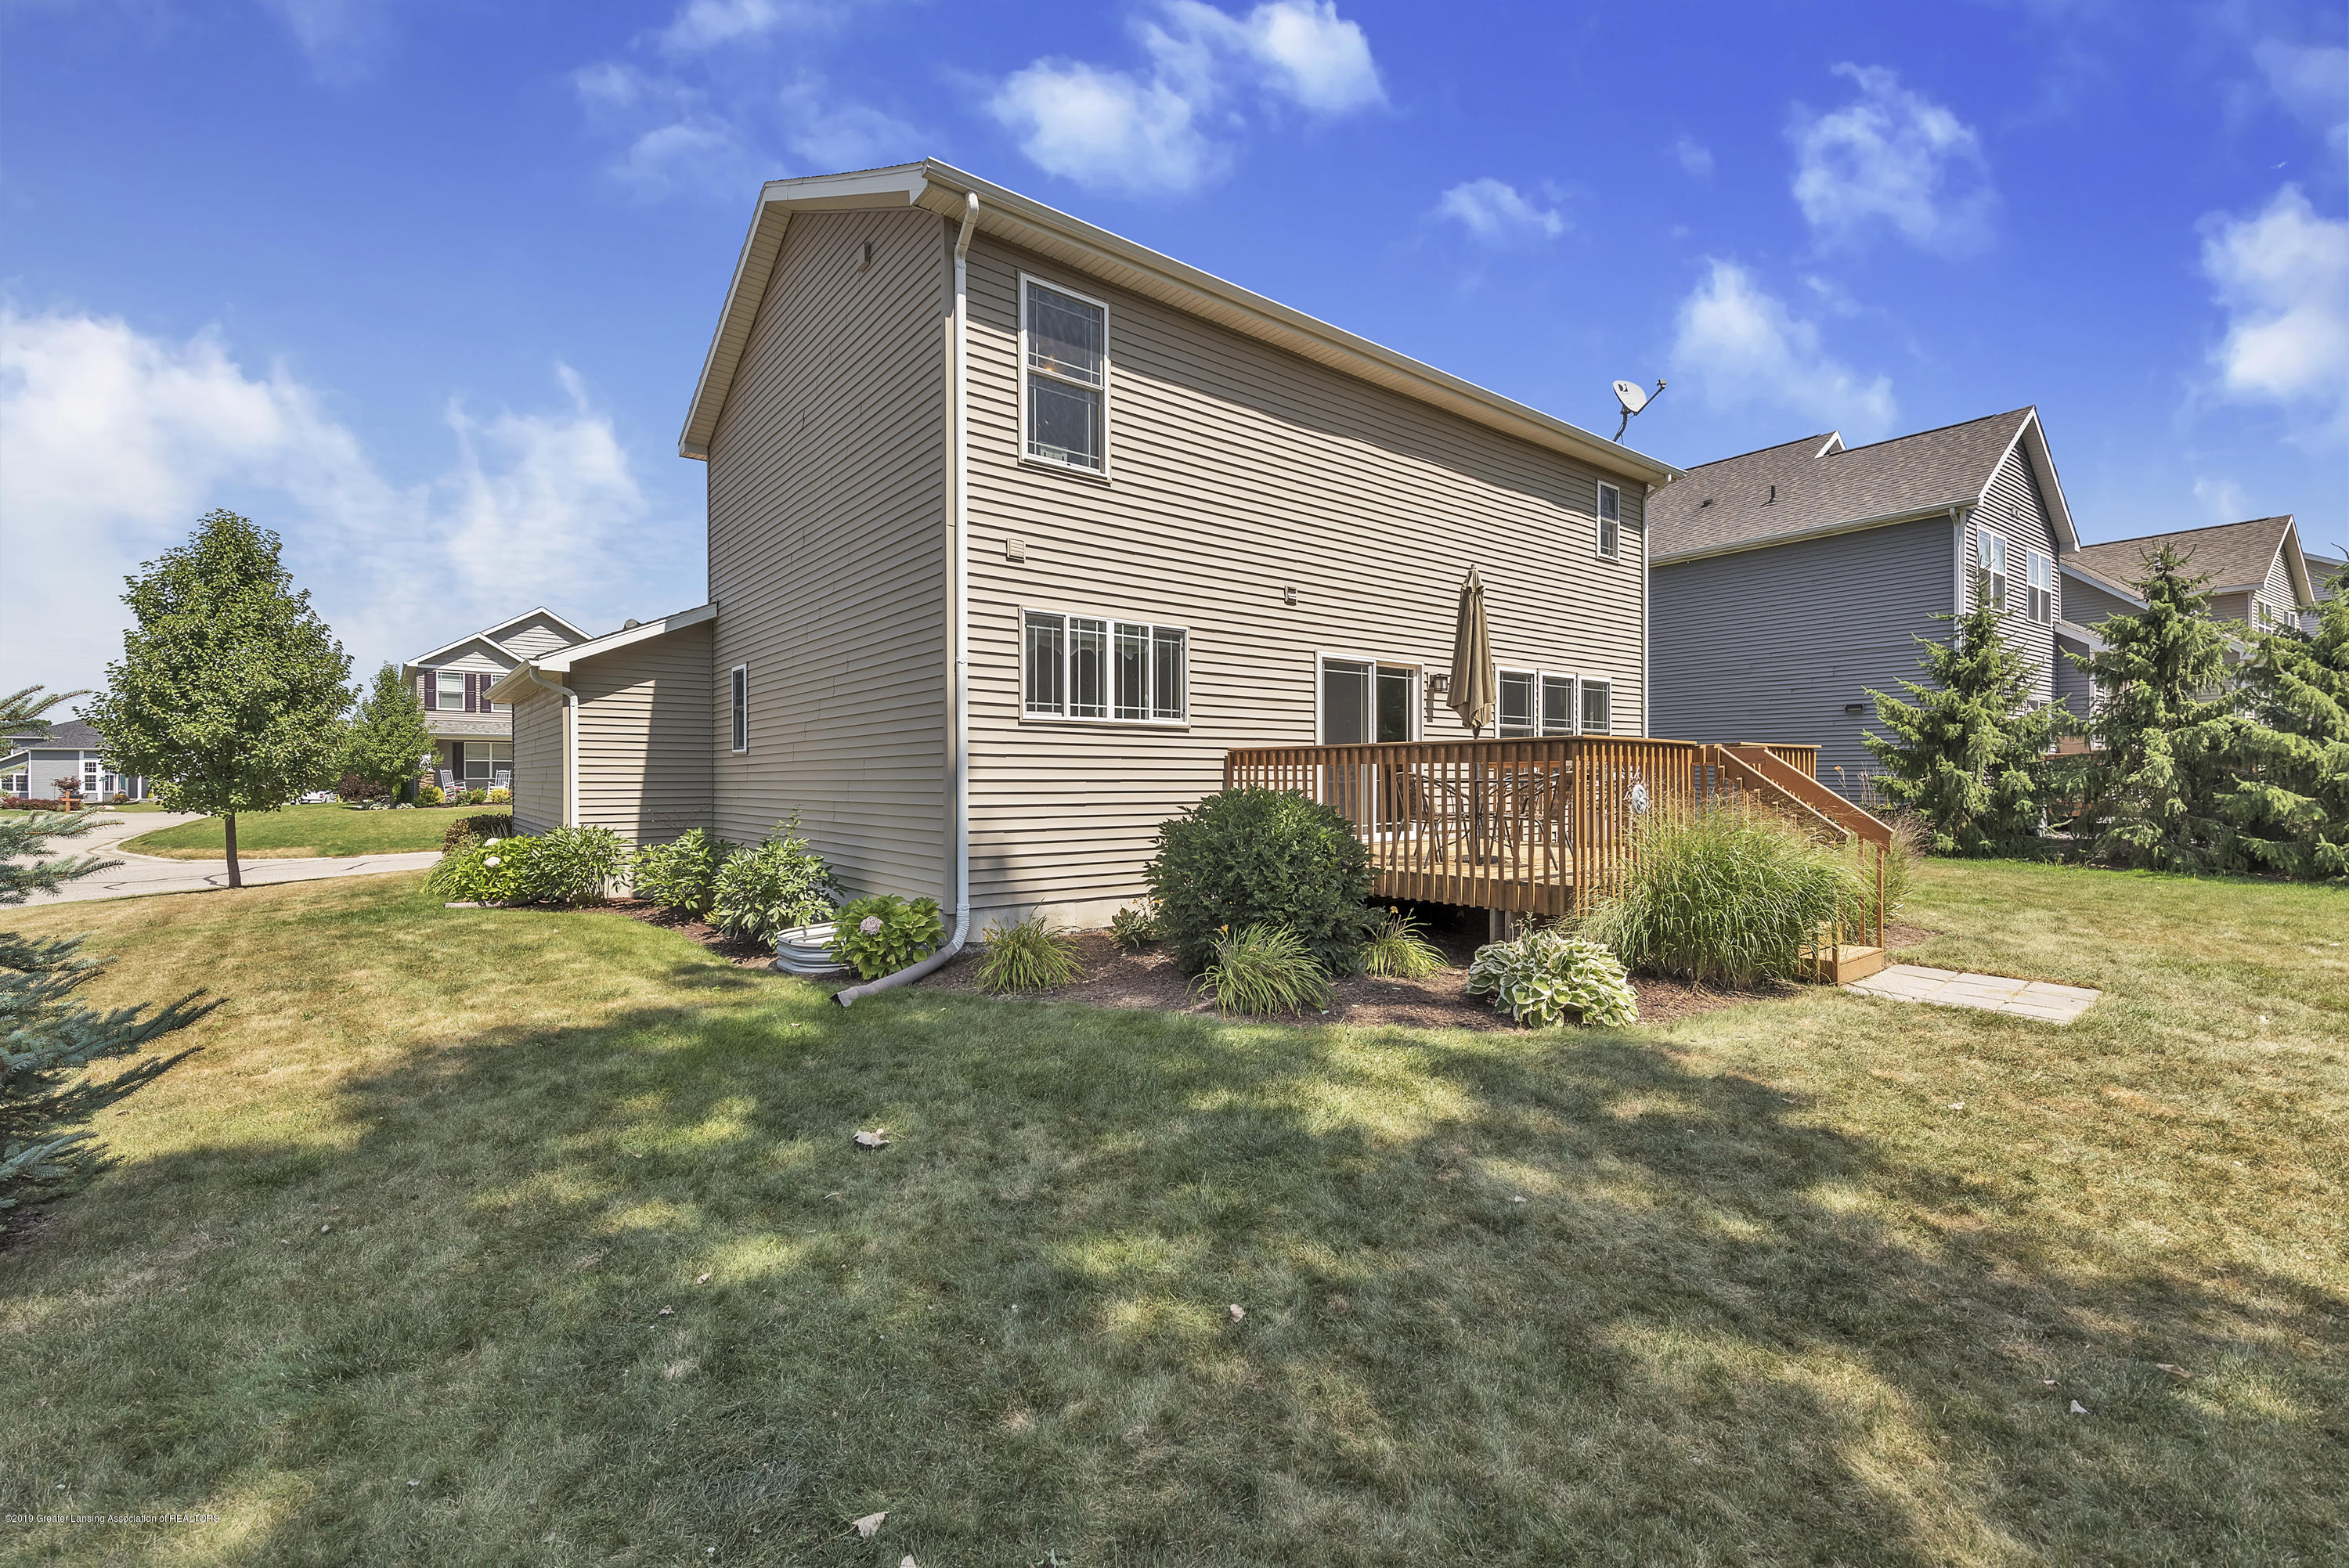 5850 Chartres Way - 5850-Chartres-Way-East-Lansing-MI-34 - 34